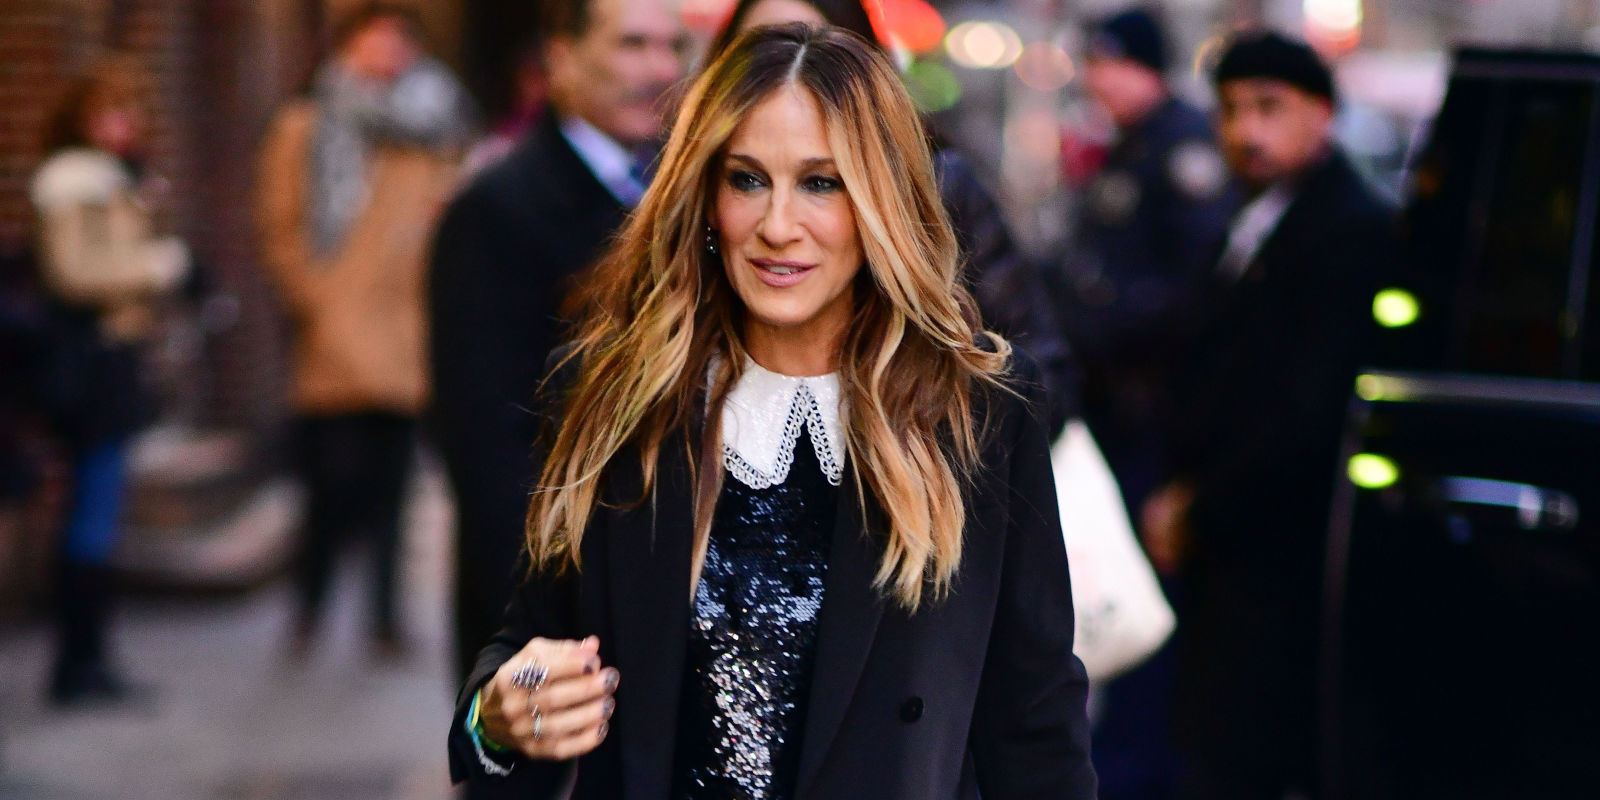 Sarah Jessica Parker Defended By Co-Star Over Kim Cattrall Feud